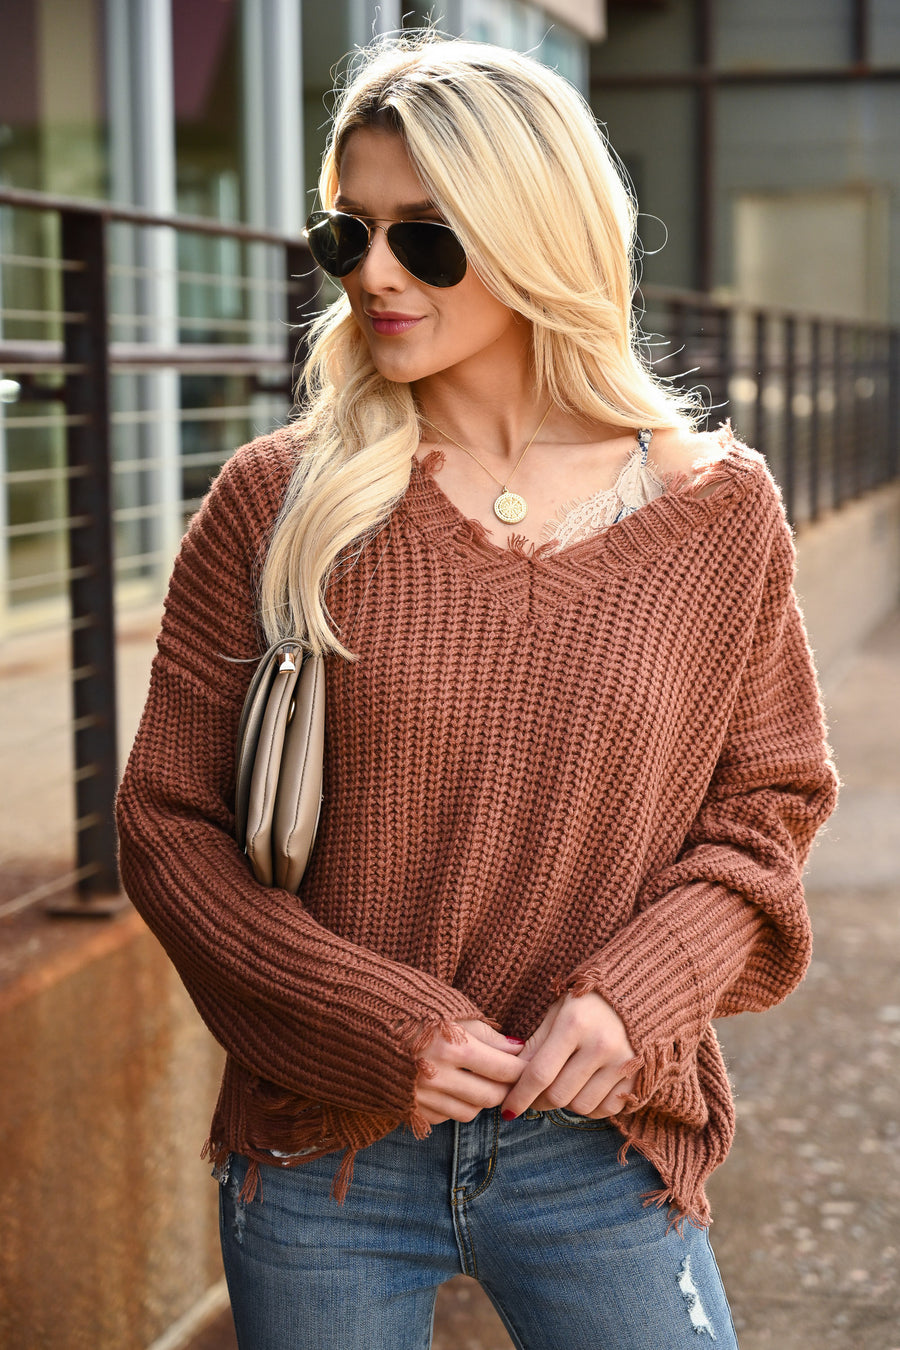 Torn Without You Sweater - Brick women's long sleeve frayed off the shoulder top, Closet Candy Boutique 1